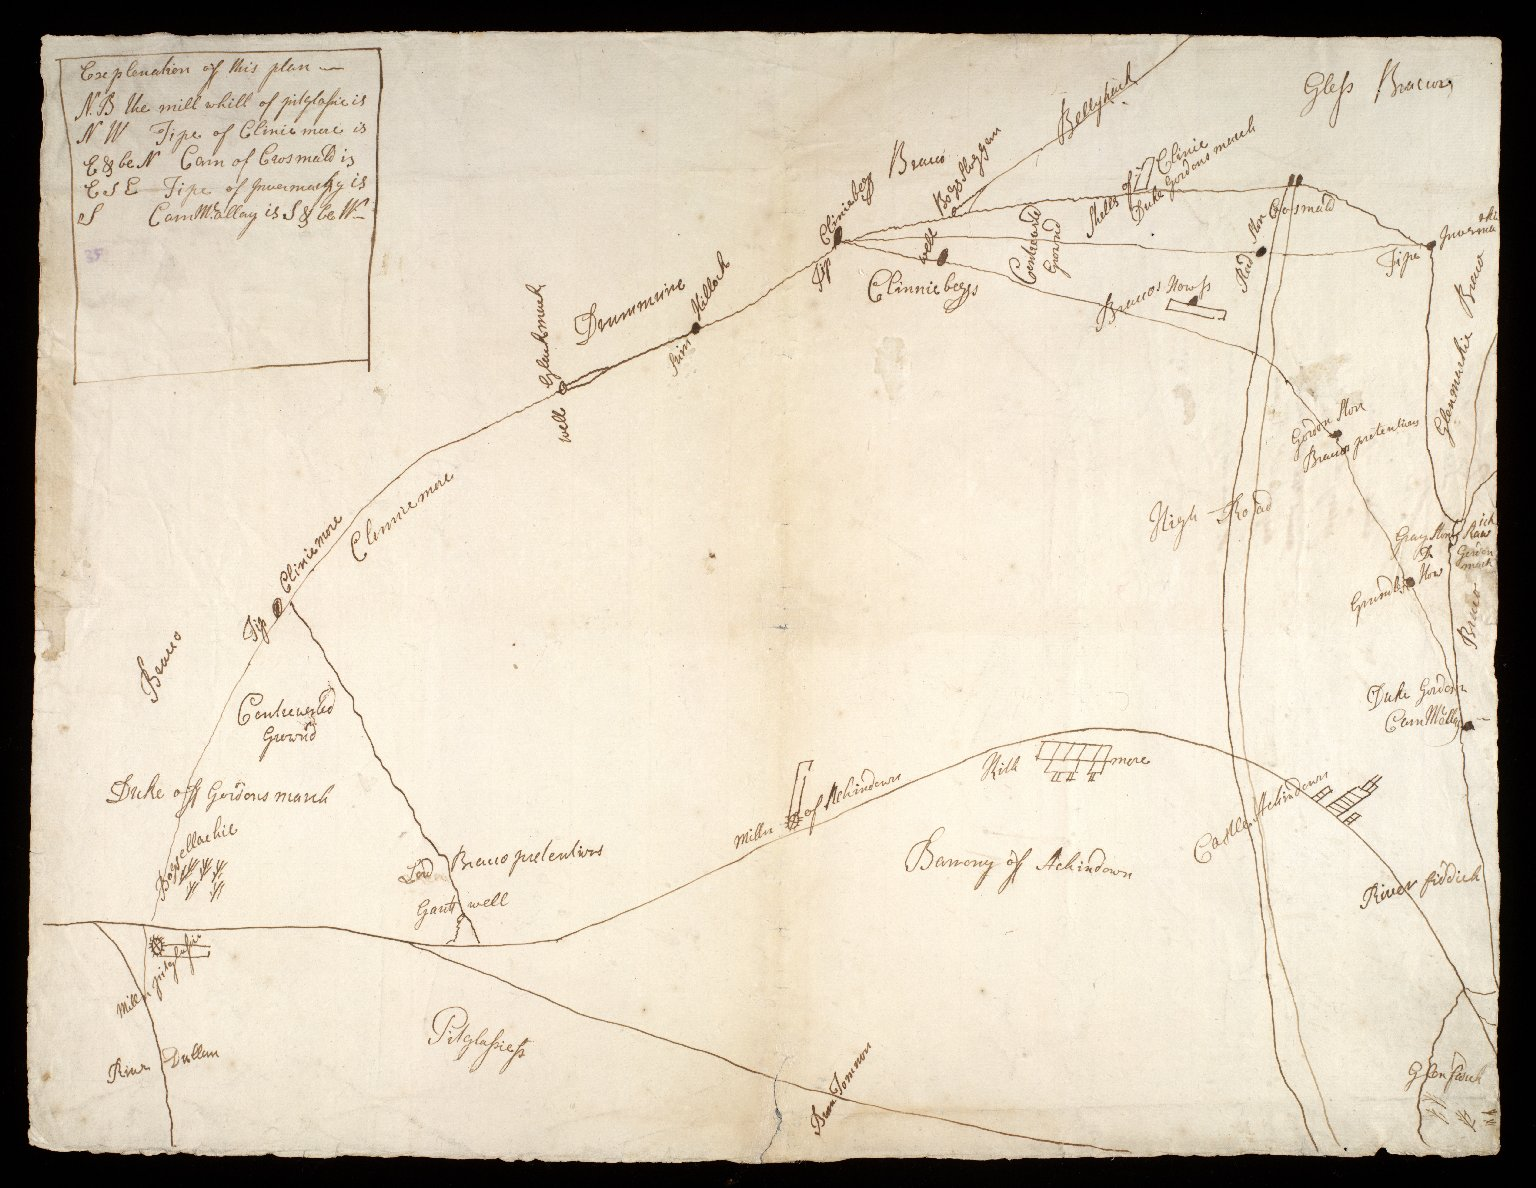 [Sketch plan of barony of Auchindown, relative to march dispute with Lord Braco] [1 of 2]